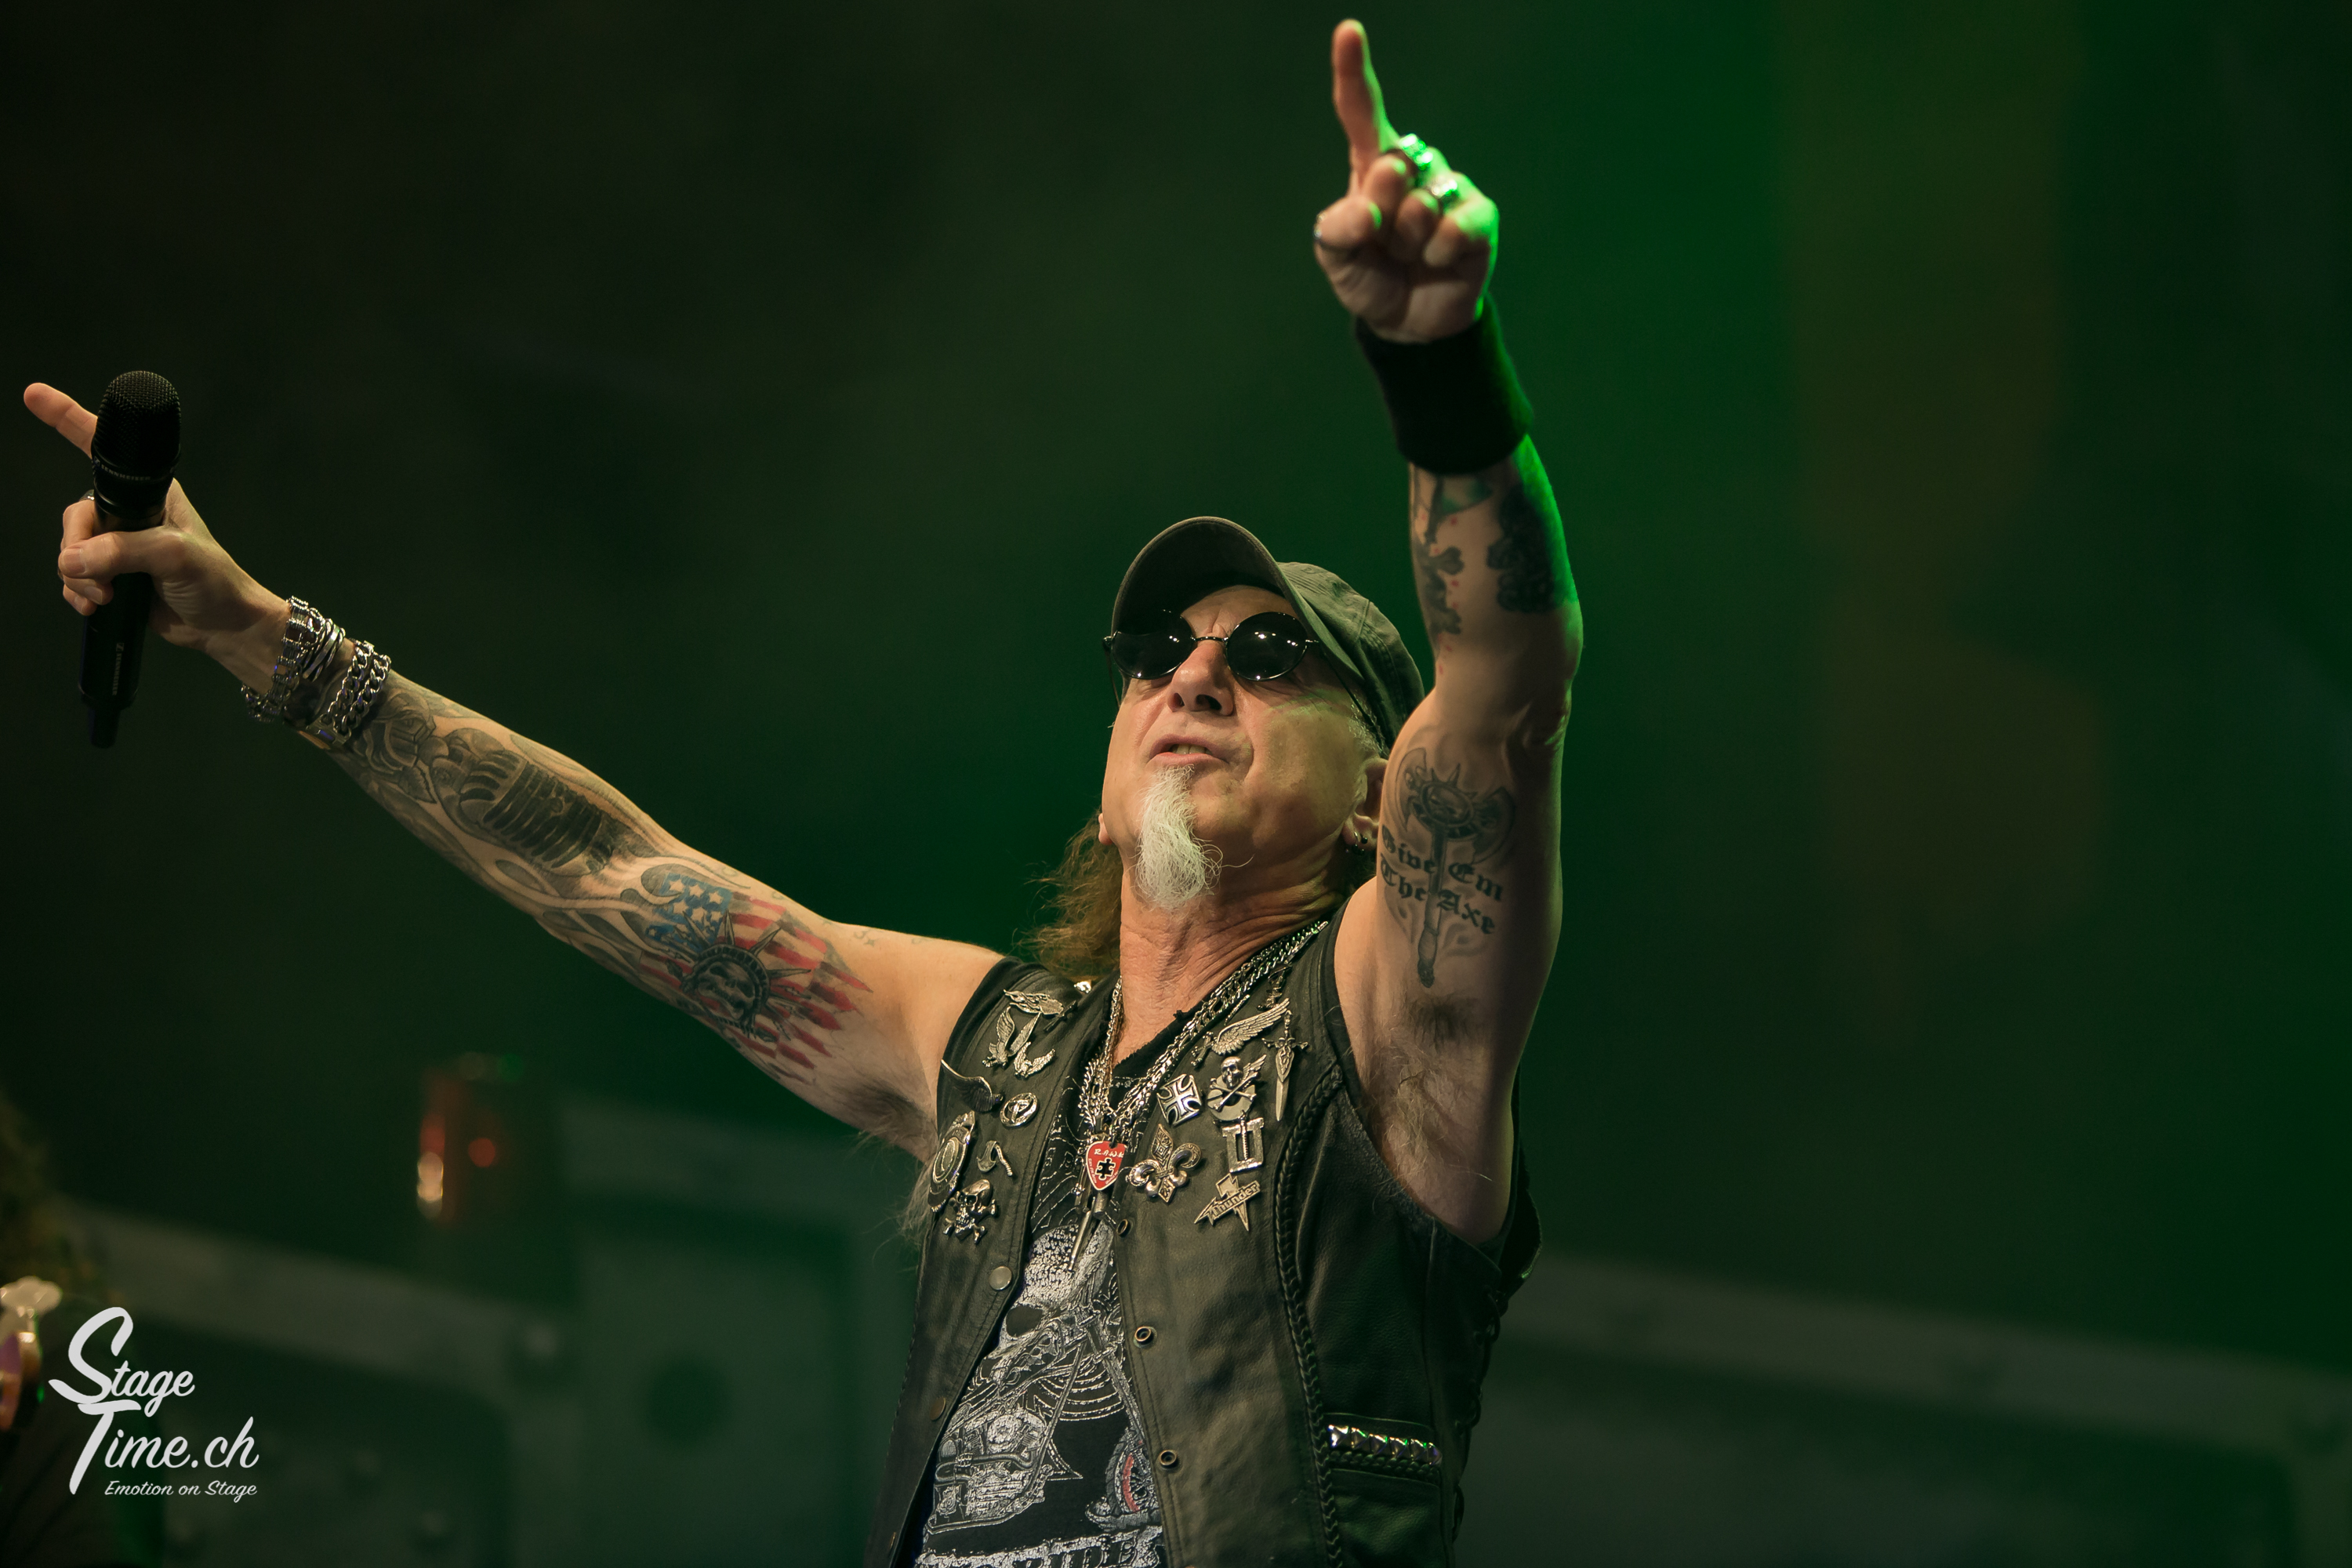 Accept_(Foto-Christoph_Gurtner-_Stagetime.ch)-5